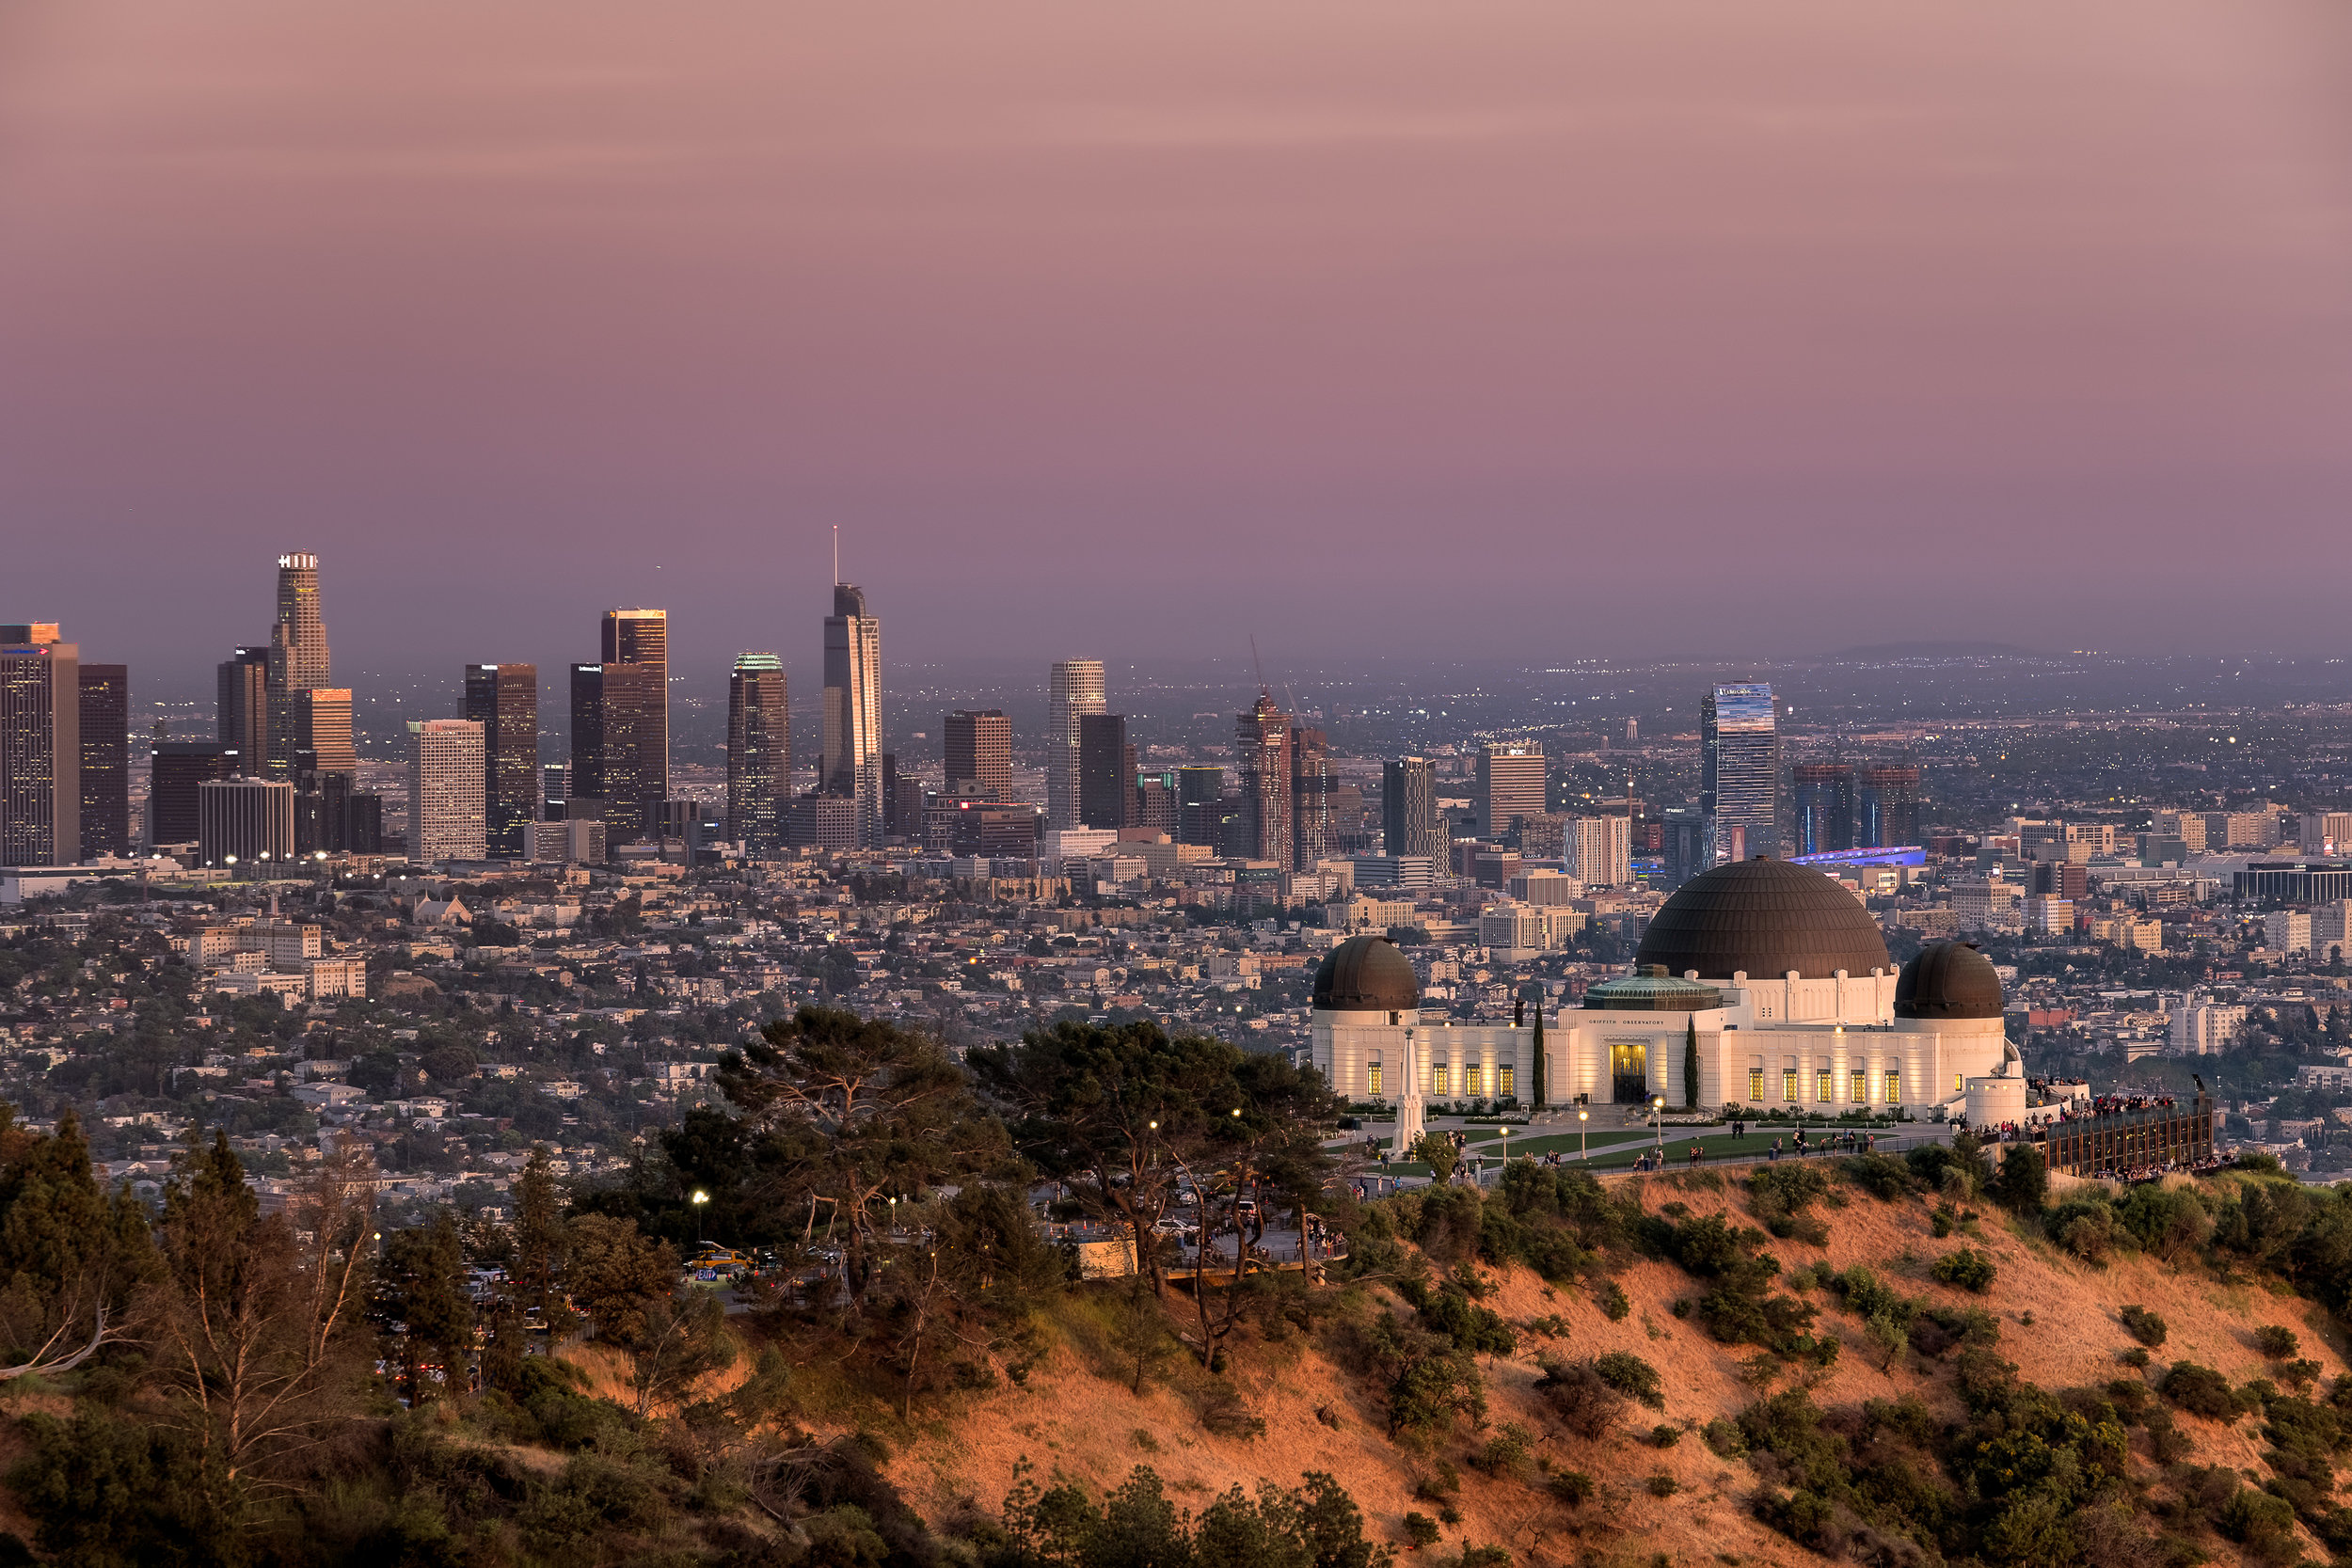 Griffith Observatory: Los Angeles, California